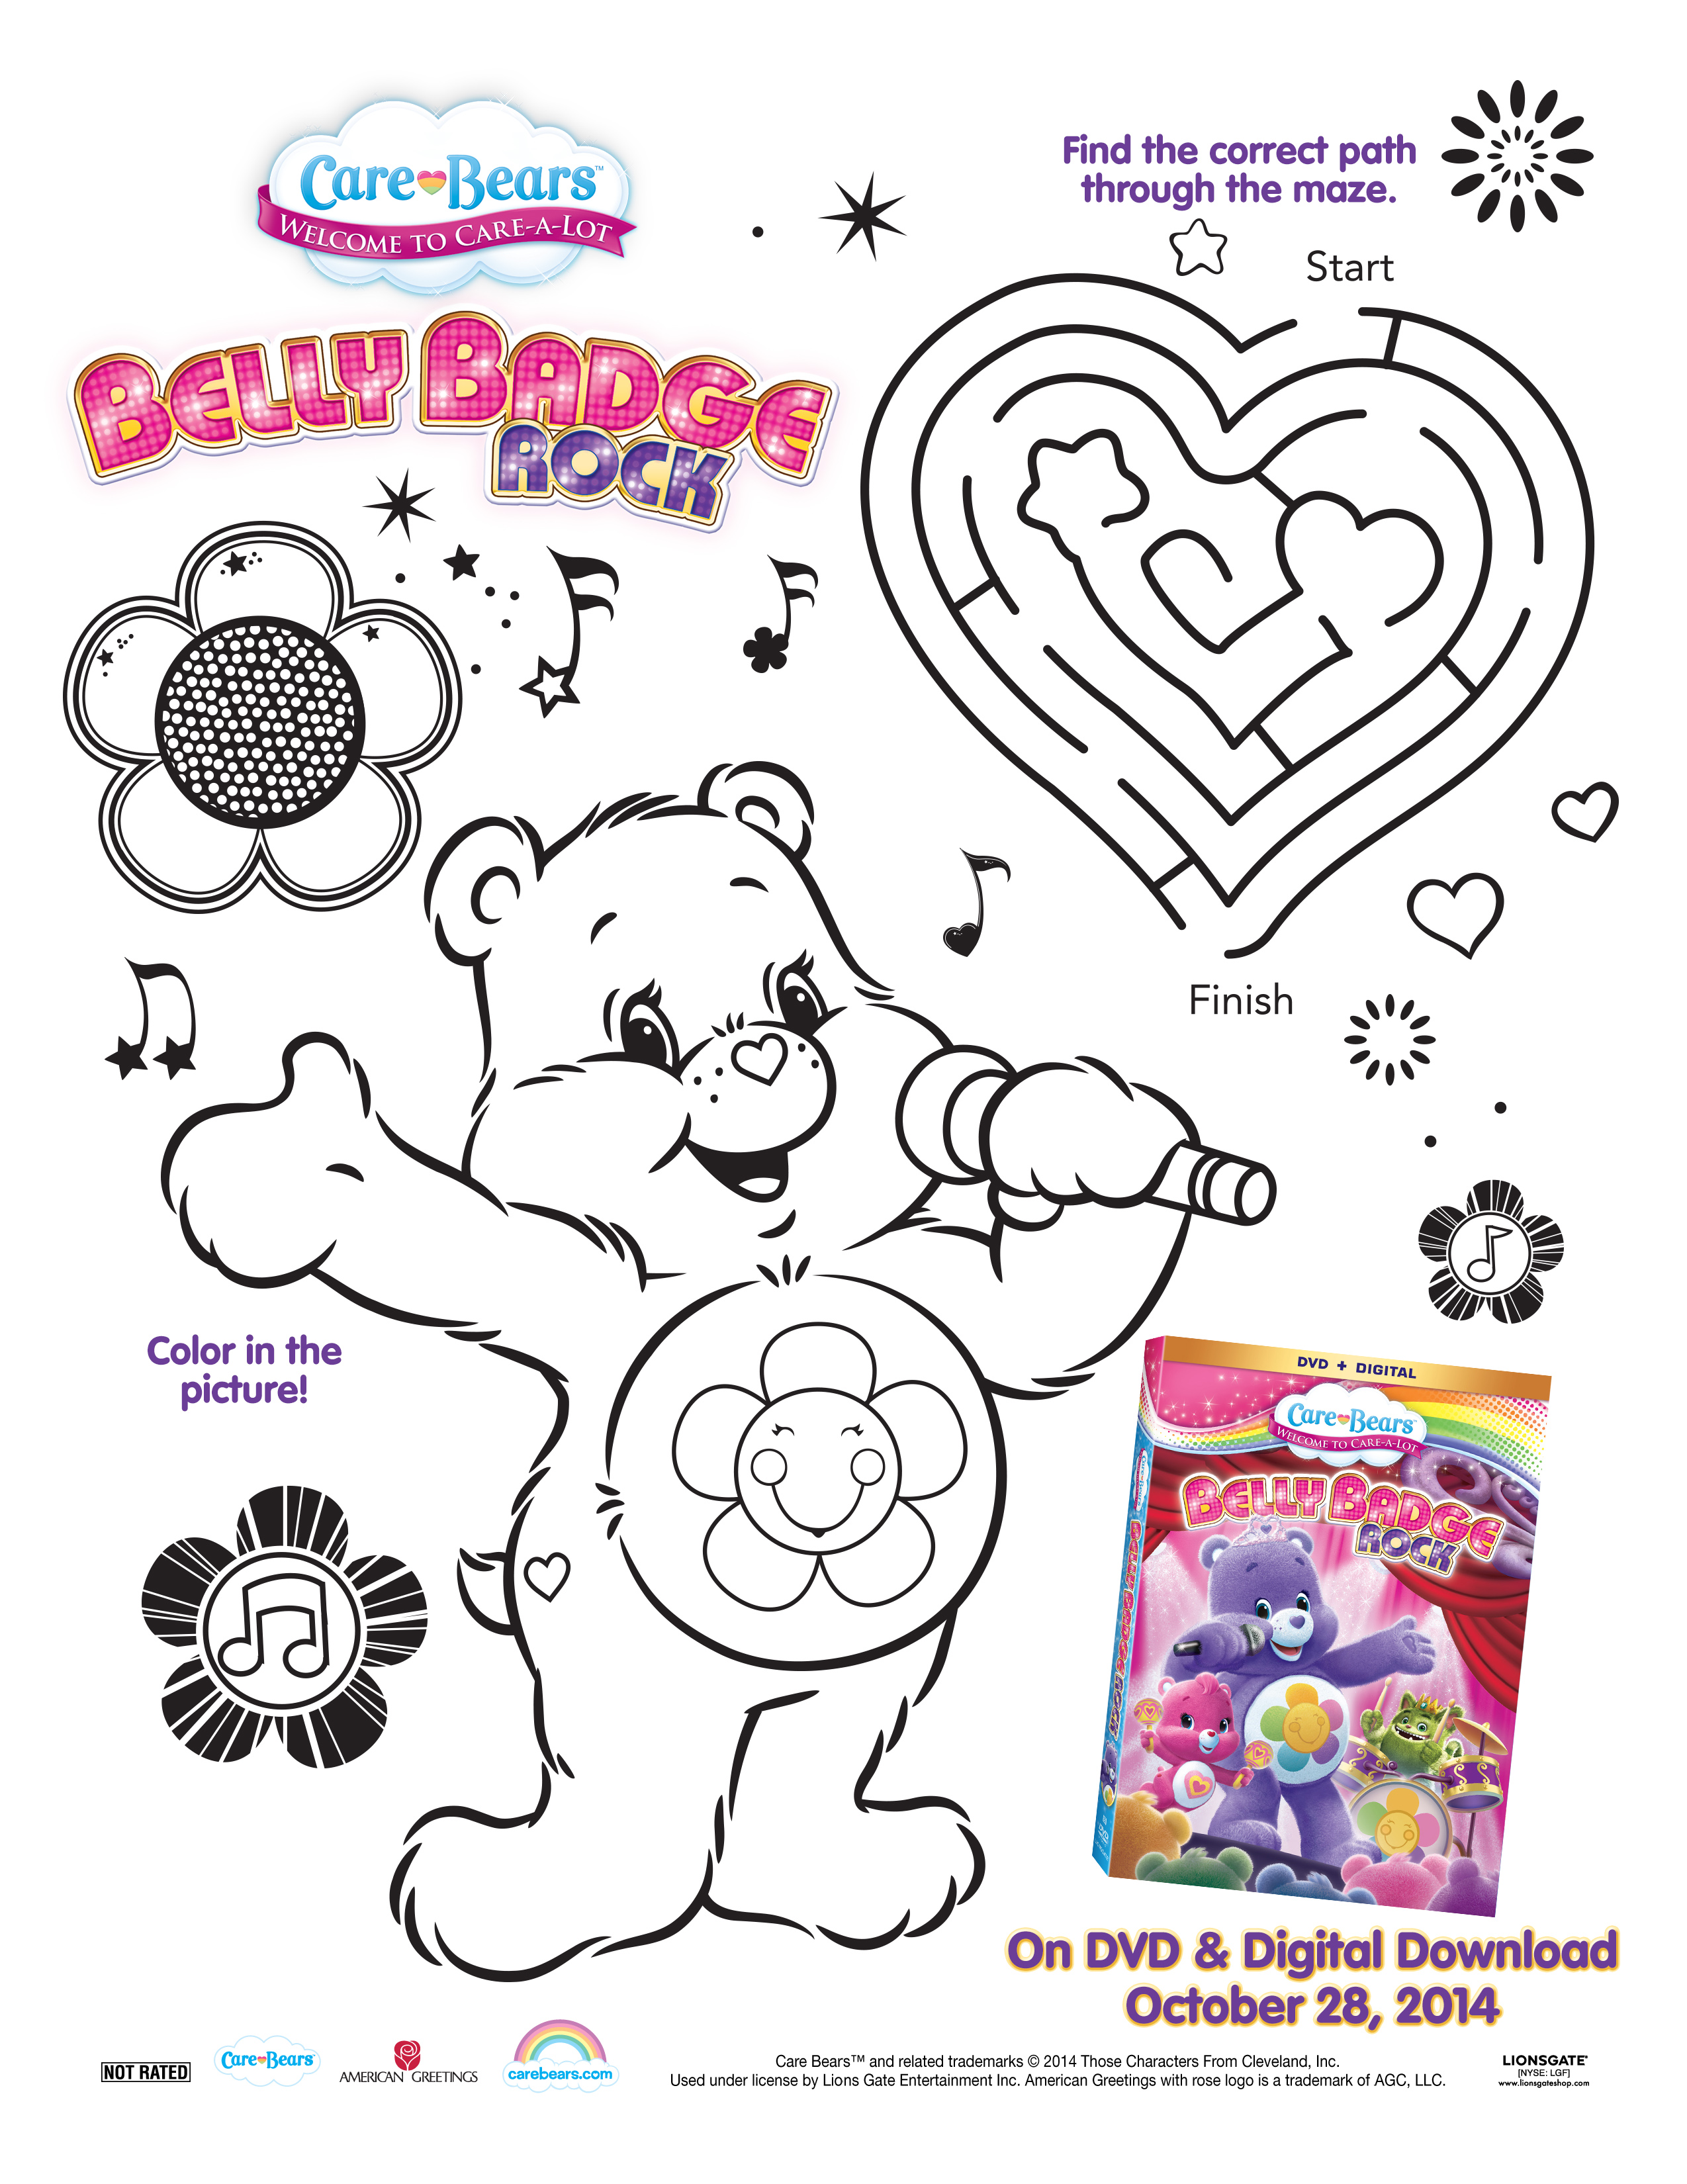 Care Bears Belly Badge Rock Dvd Giveaway